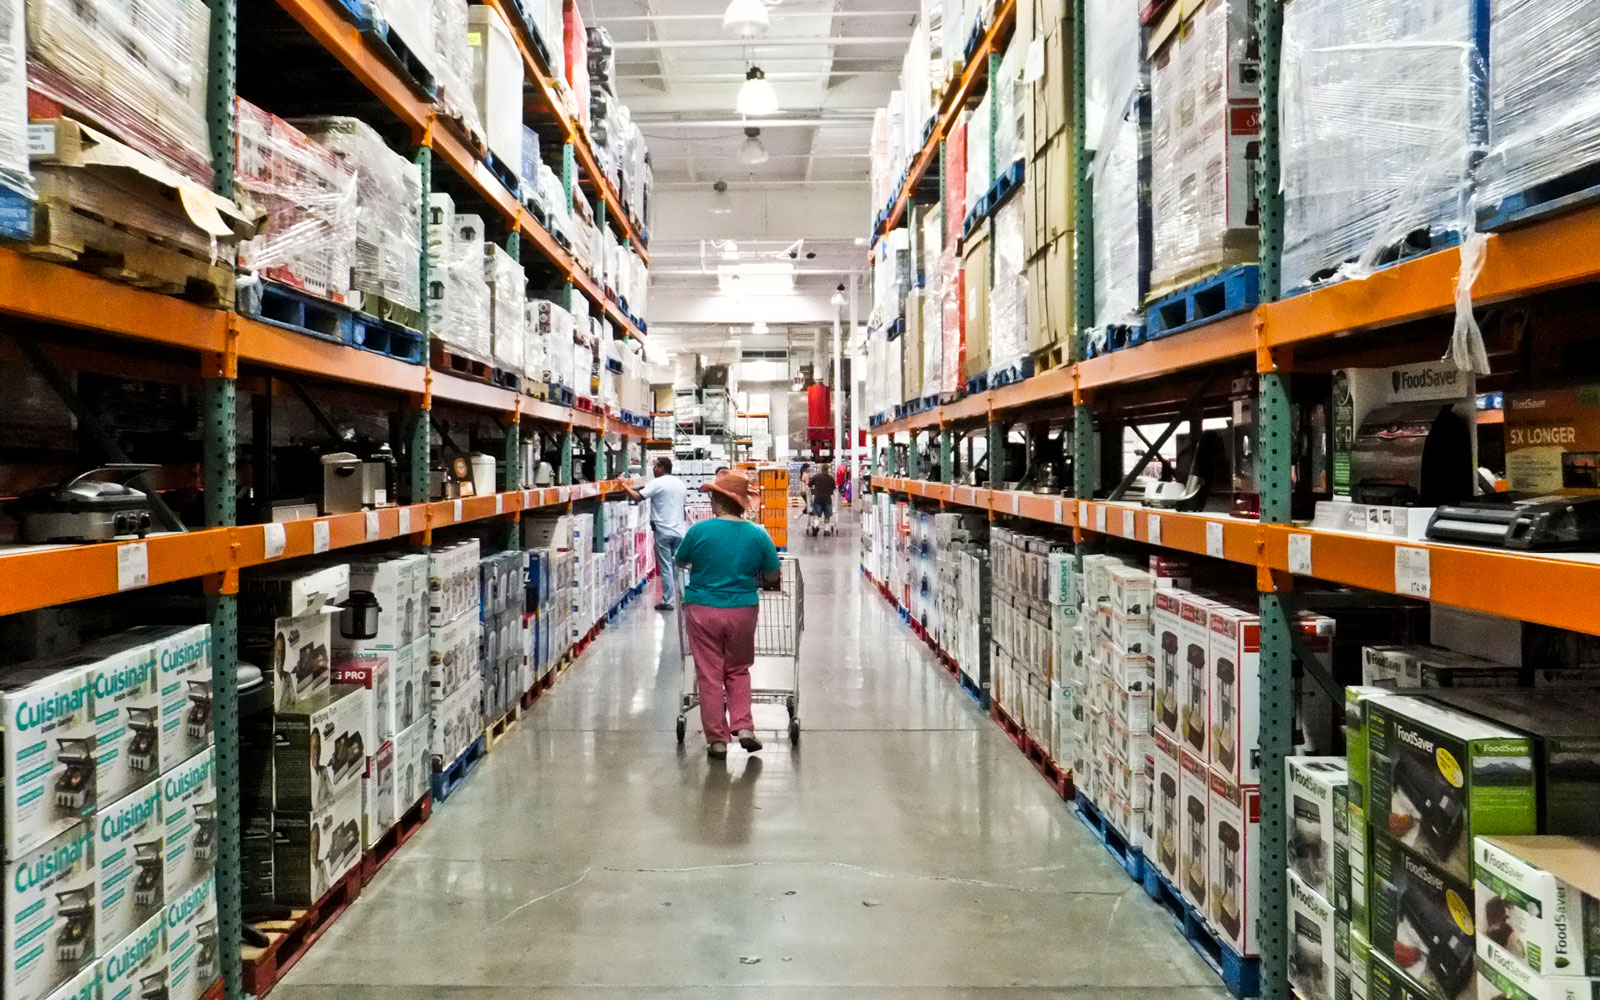 5 Things You Can Buy at Costco Without a Membership